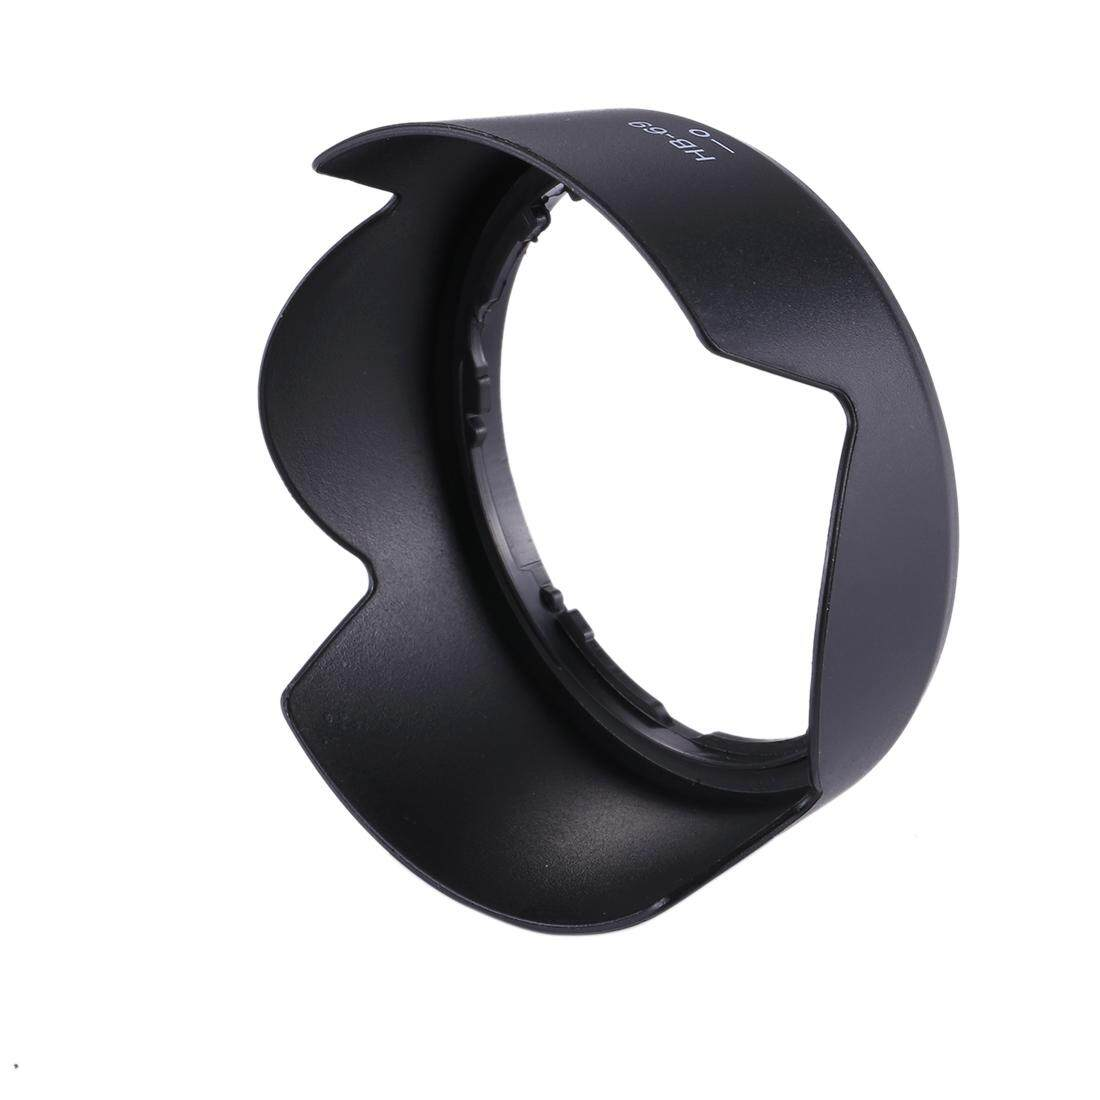 HB-69 Lens Hood Shade for Nikon Camera AF-S DX NIKKOR 18-55mm F3.5-5.6 G VR II Lens